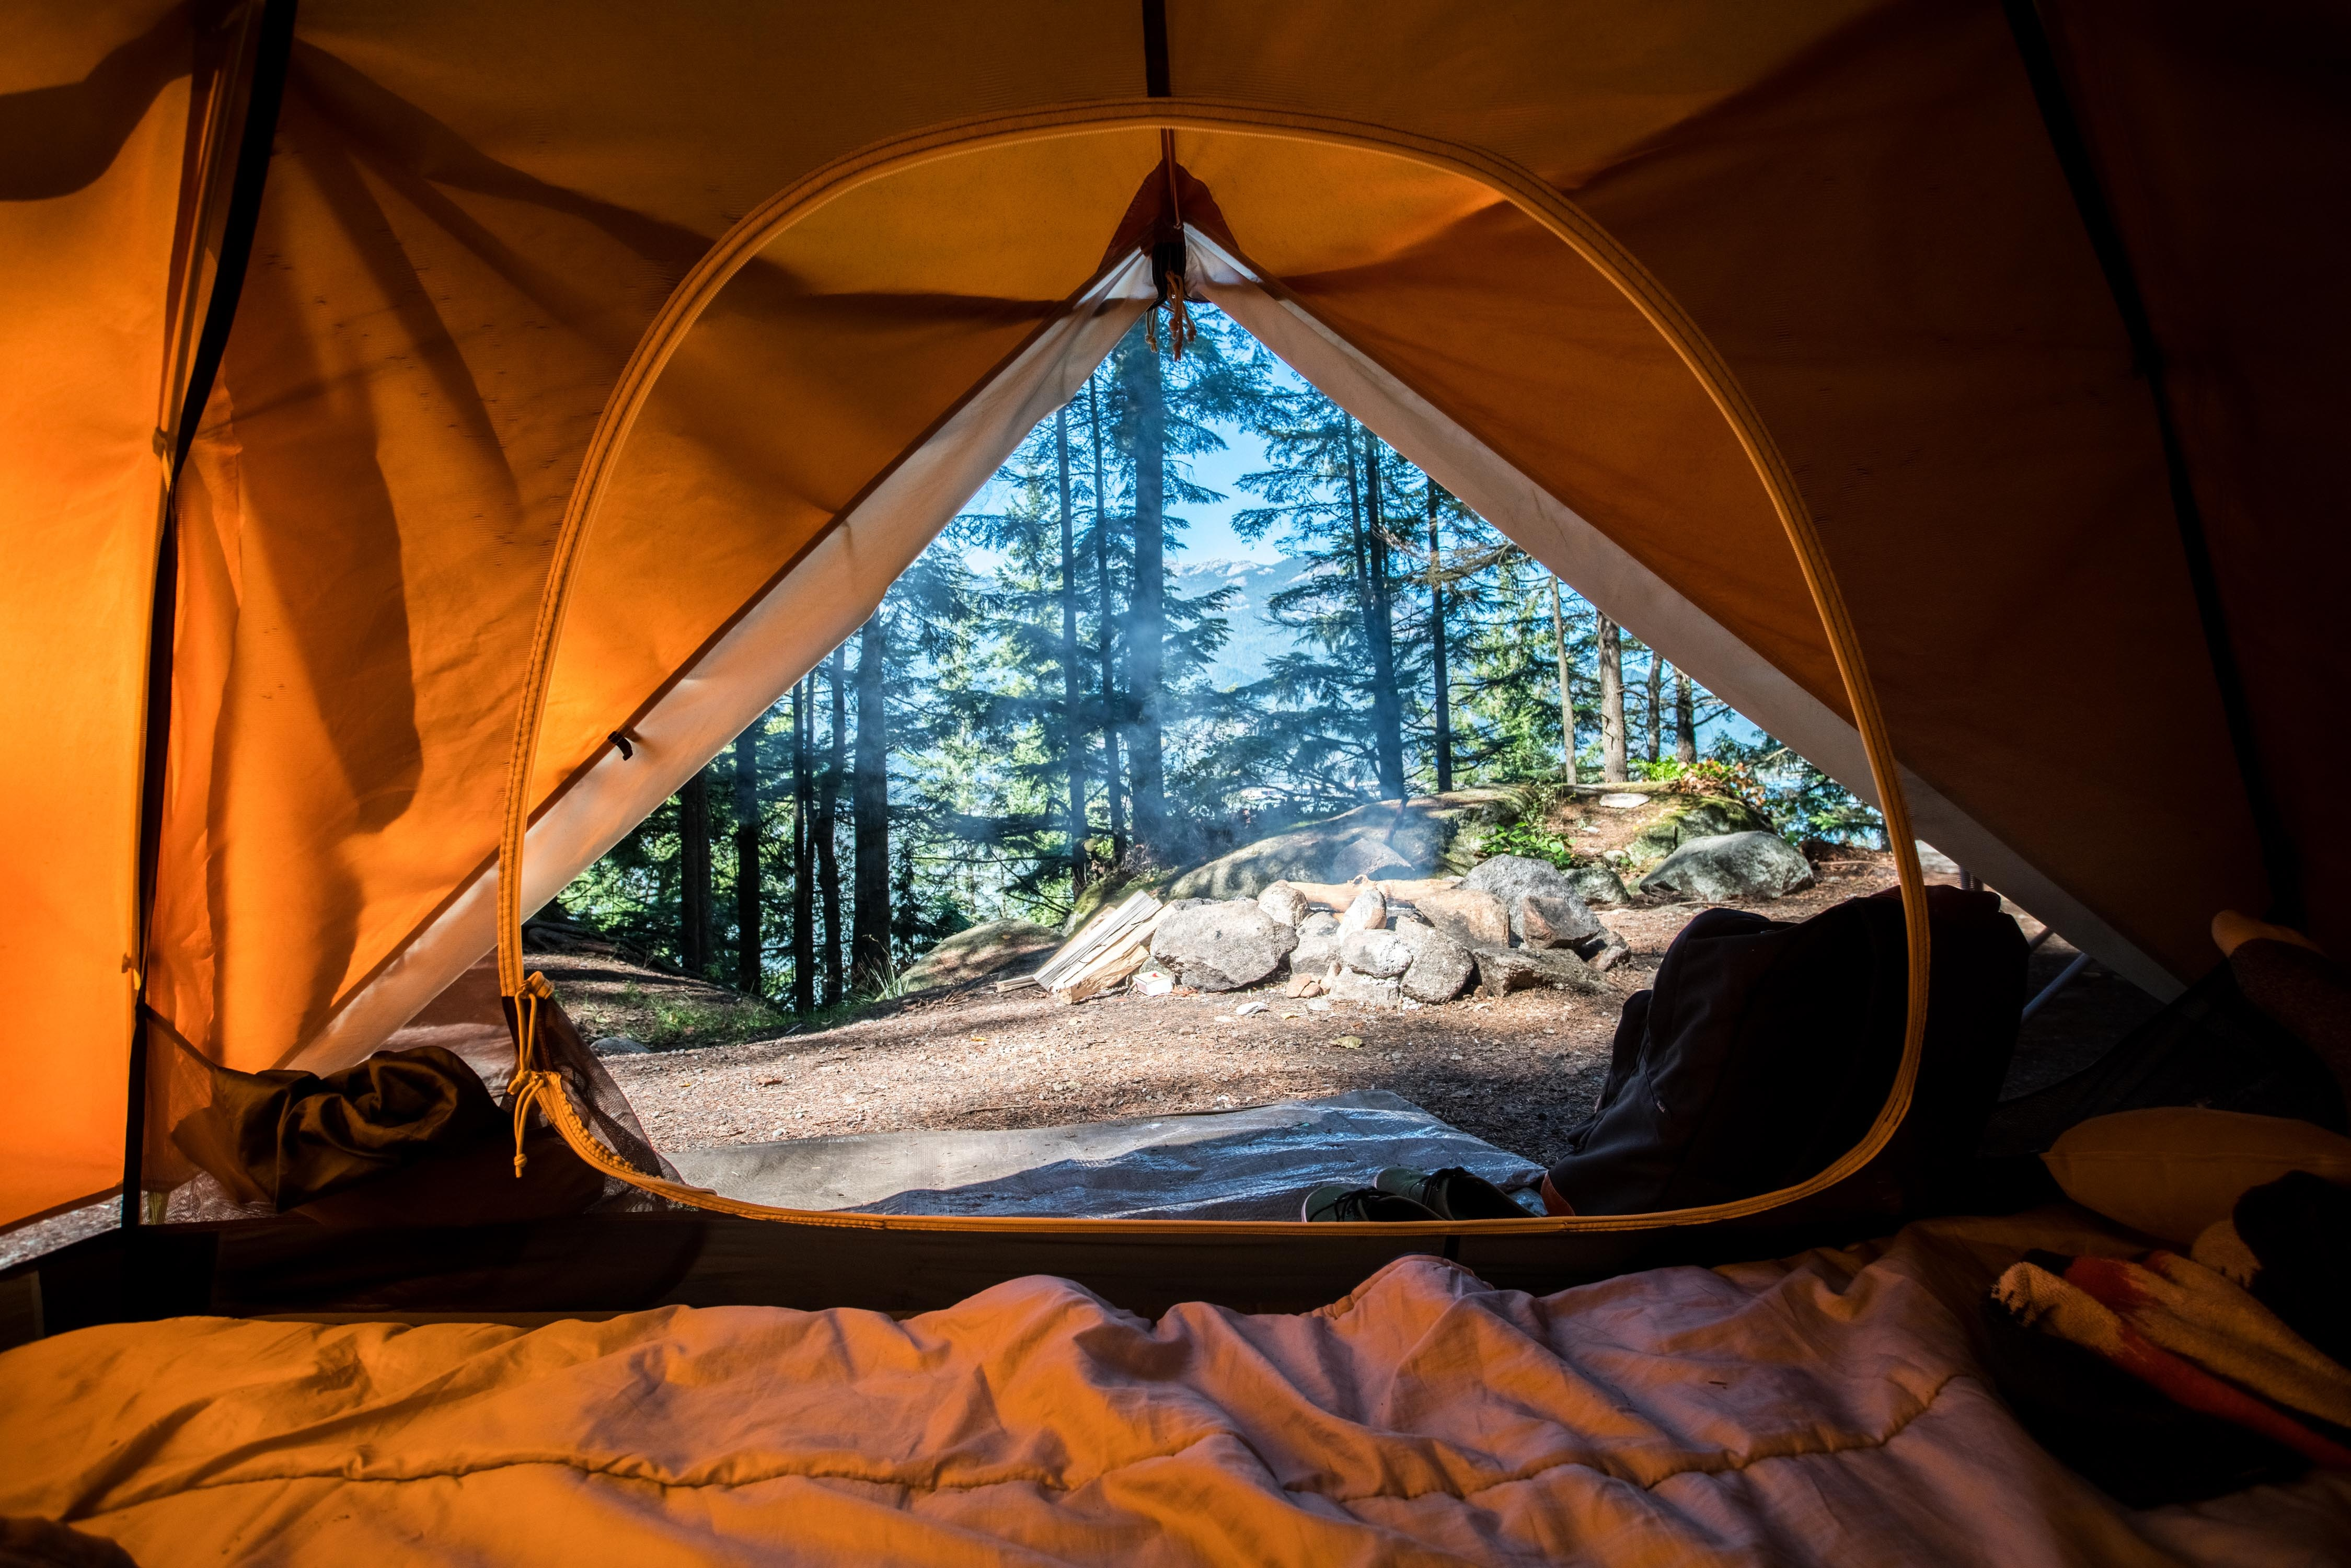 Inside a tent with a view of the forest outside.